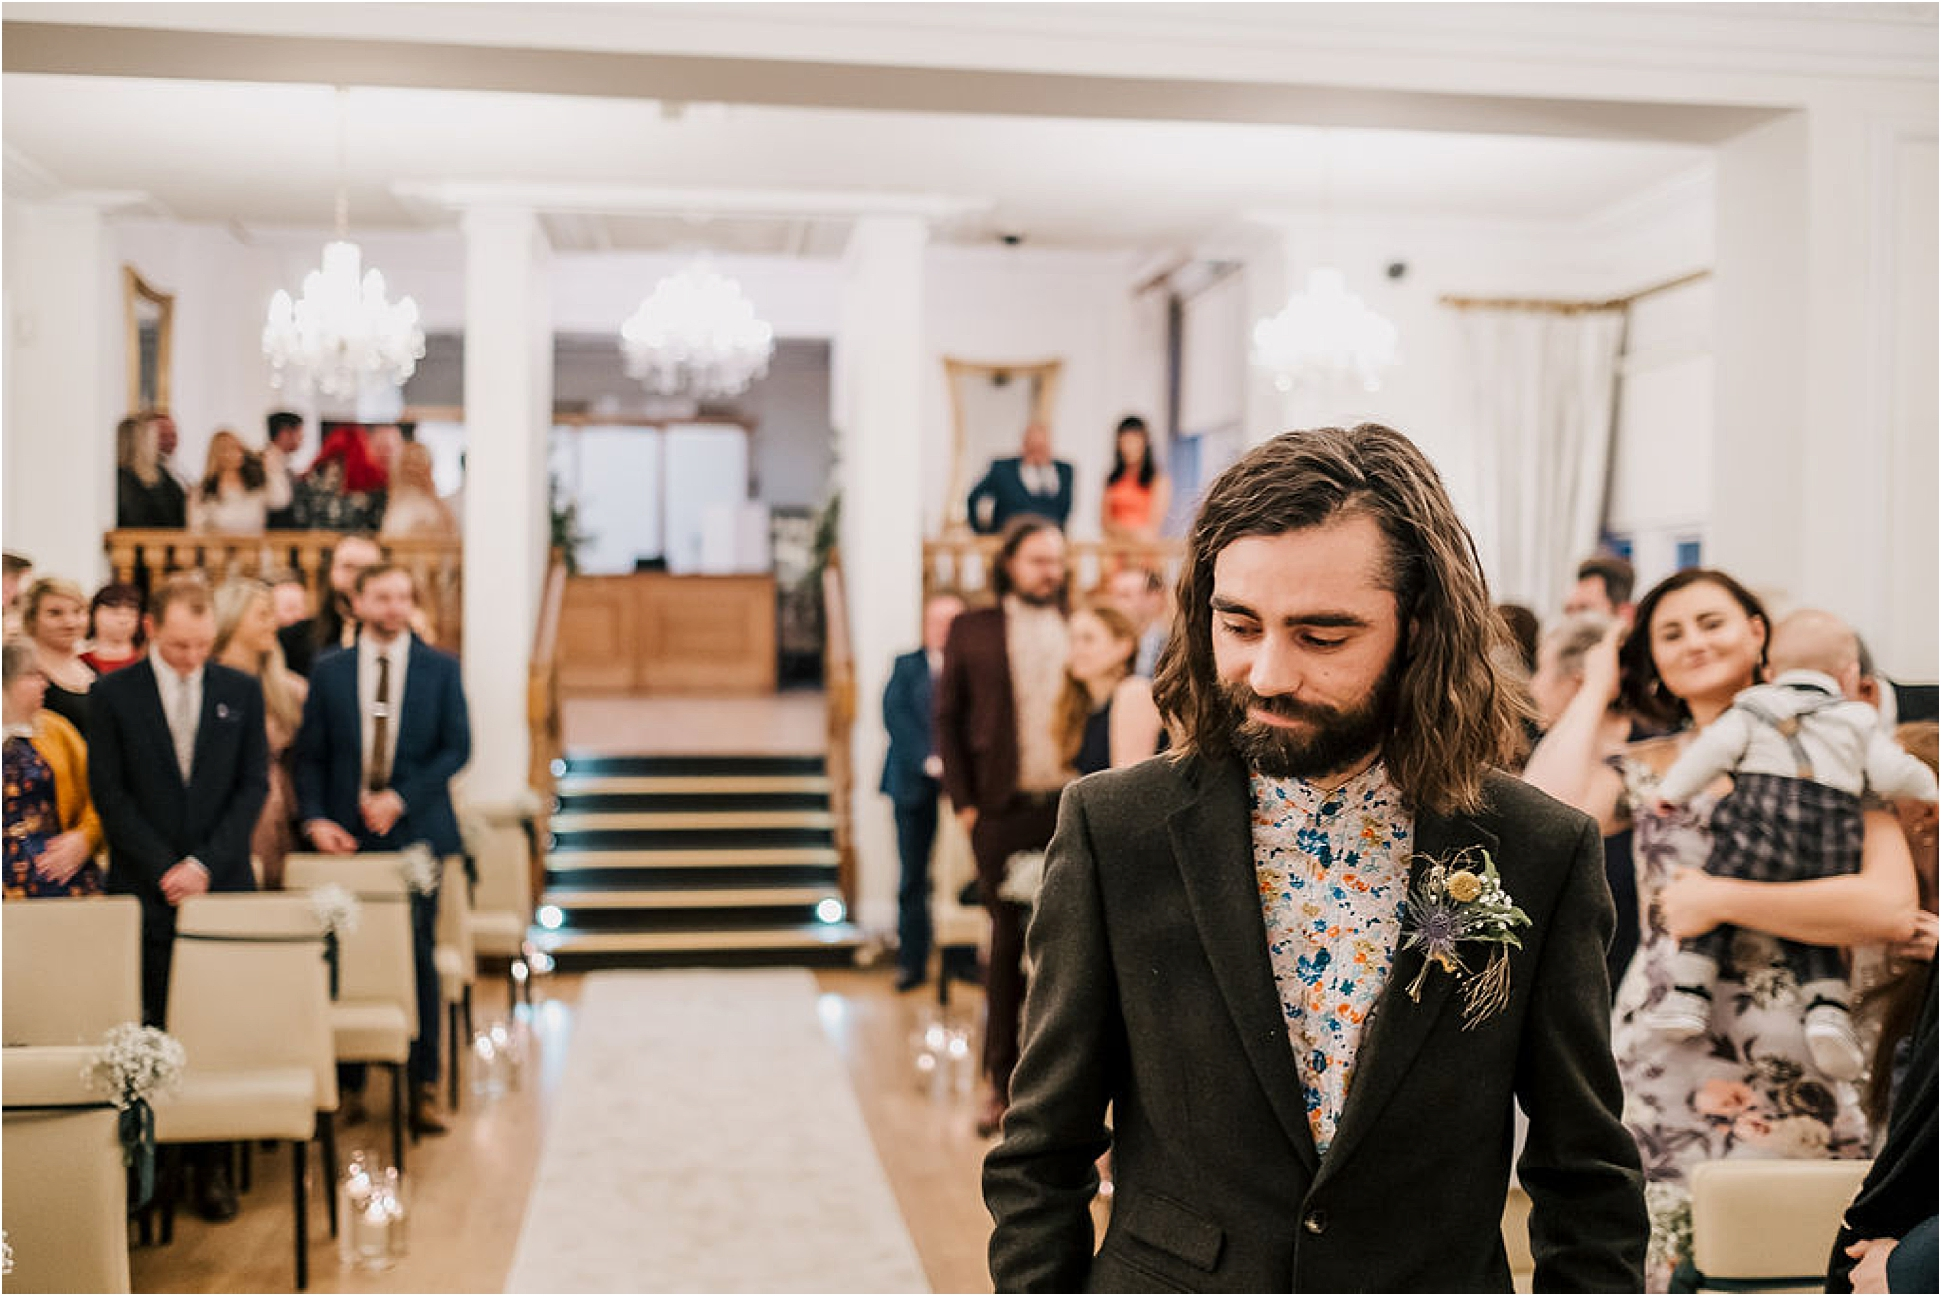 Katie and Liam's super cool twilight wedding at West Tower